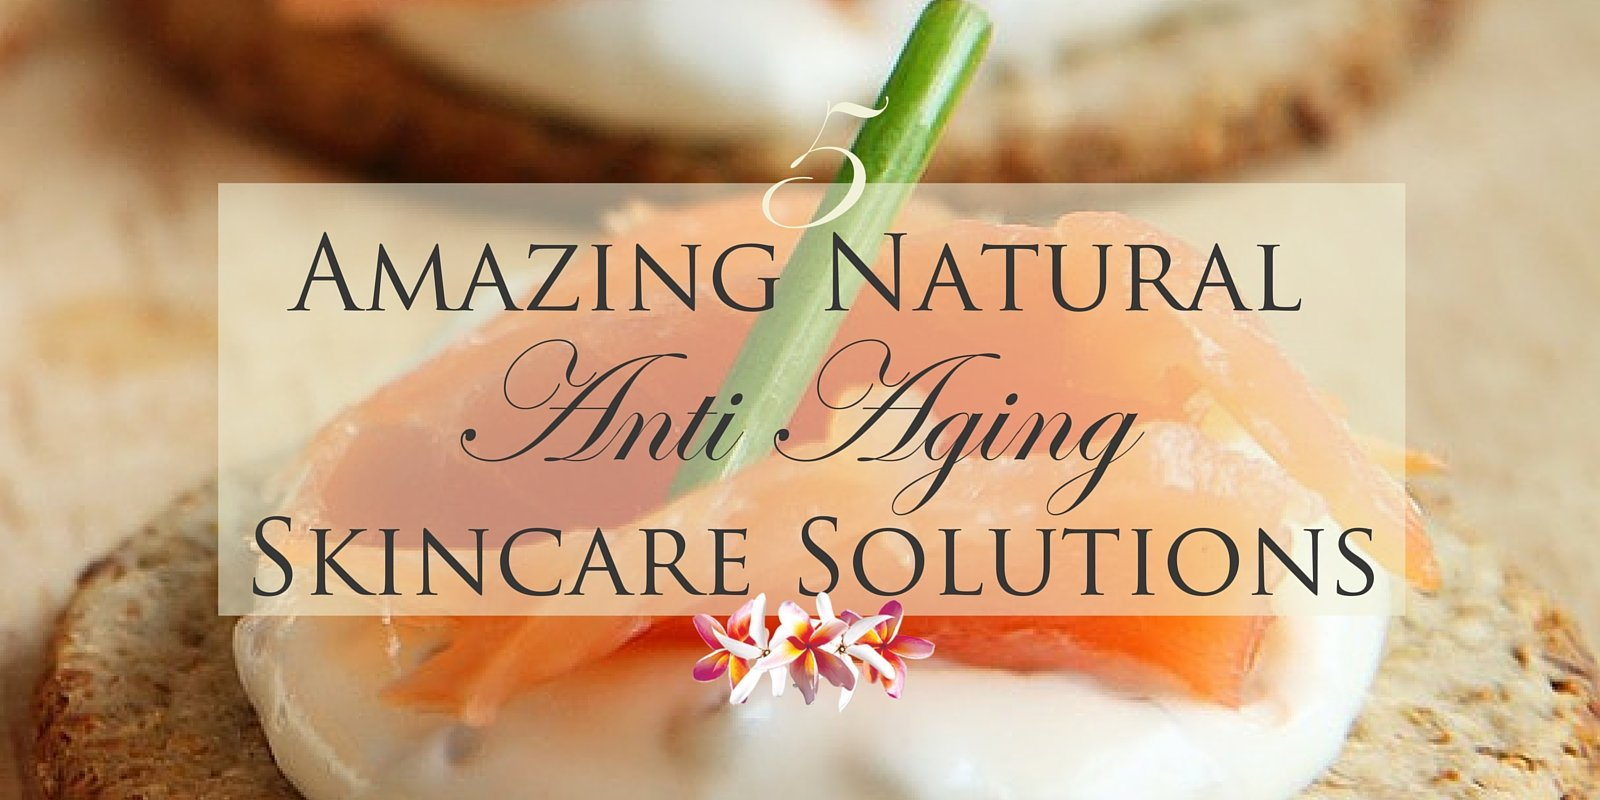 5 Amazing Natural Anti-Aging Skincare Solutions